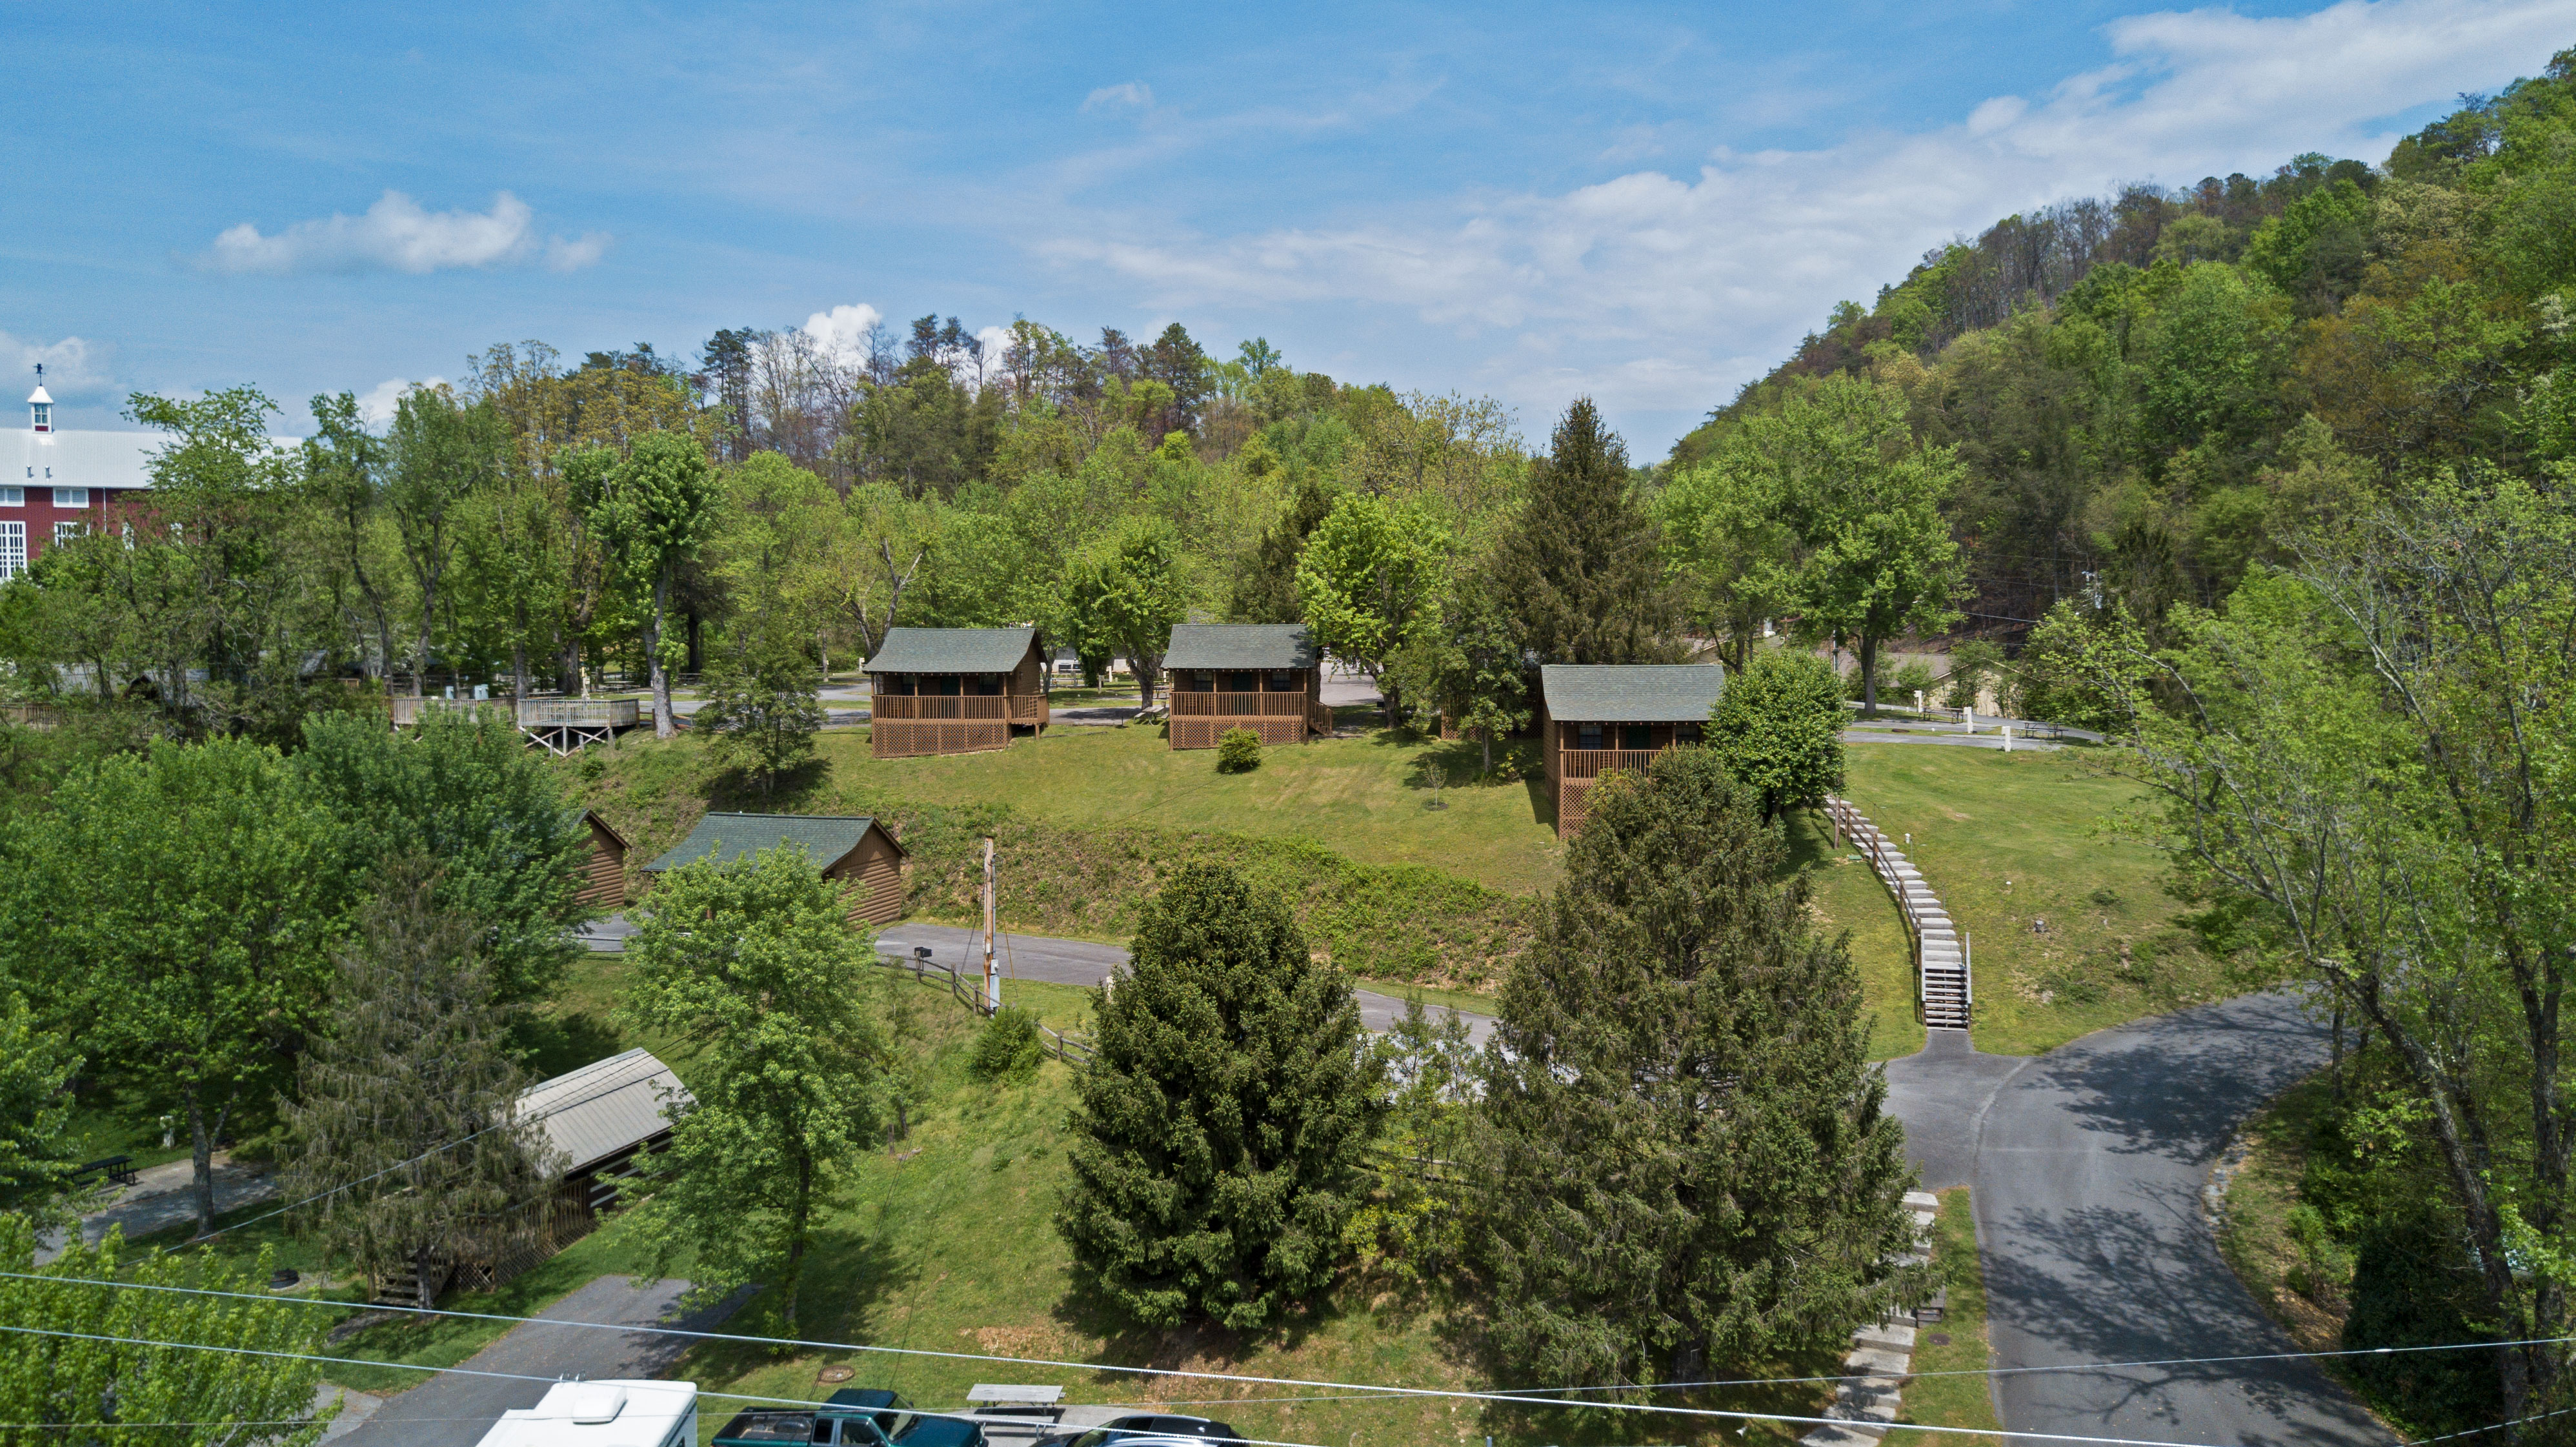 cabins pet access cabin rent pool and cheap secluded smoky cbin rentals friendly discount pigeon in cab with forge for mountains hymoon under gatlinburg tn military